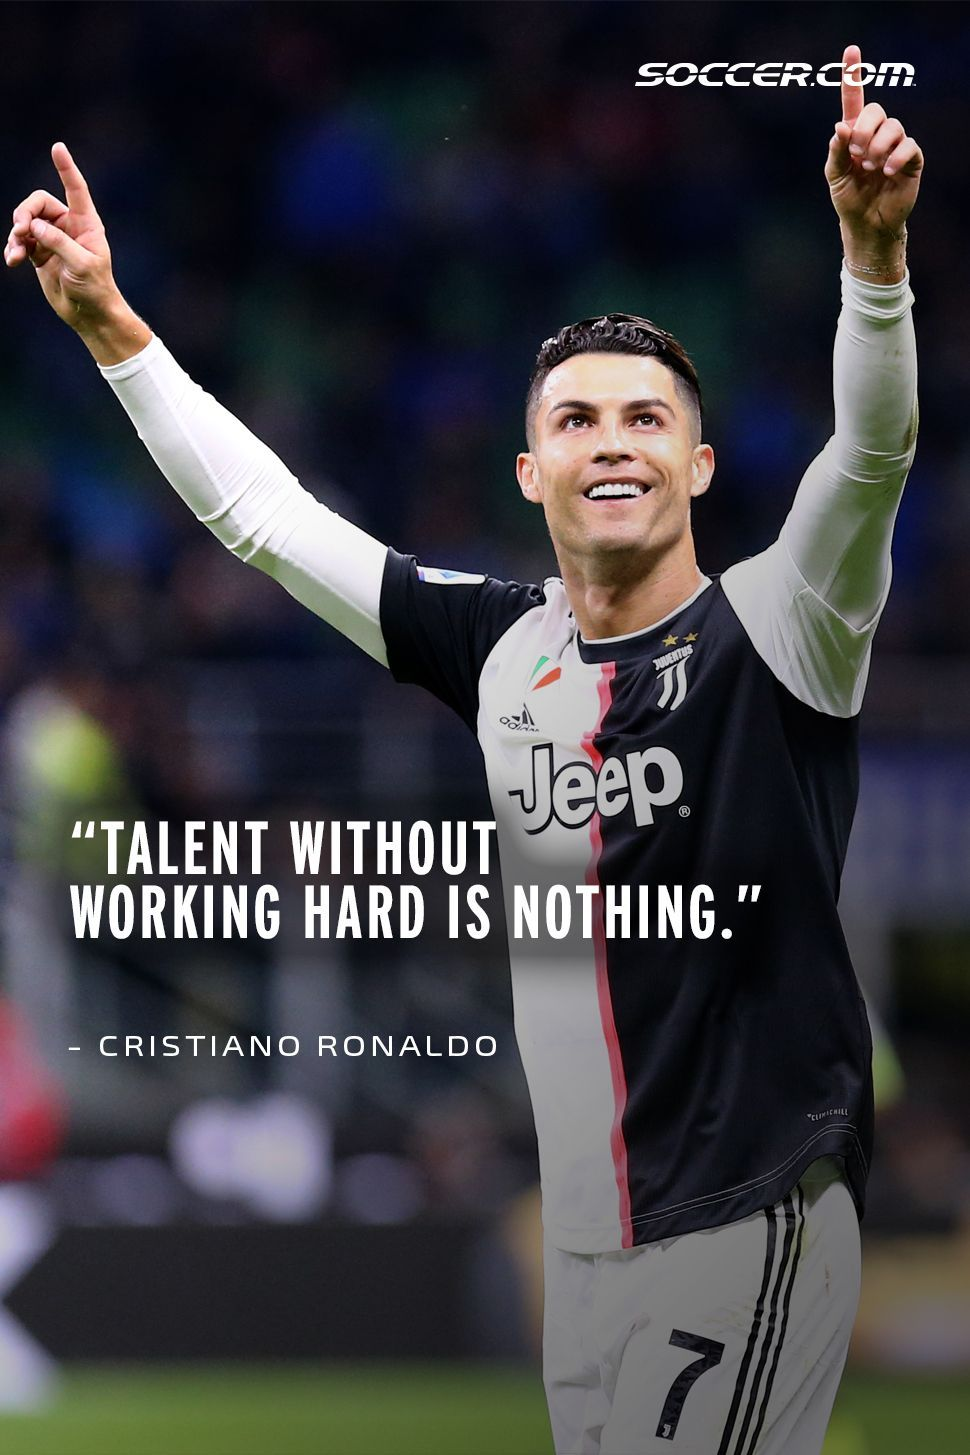 European Football Soccer Quotes Inspirational Soccer Quotes Inspirational Work Hard Soccer Quotes In 2020 Ronaldo Quotes Cristiano Ronaldo Quotes Soccer Quotes